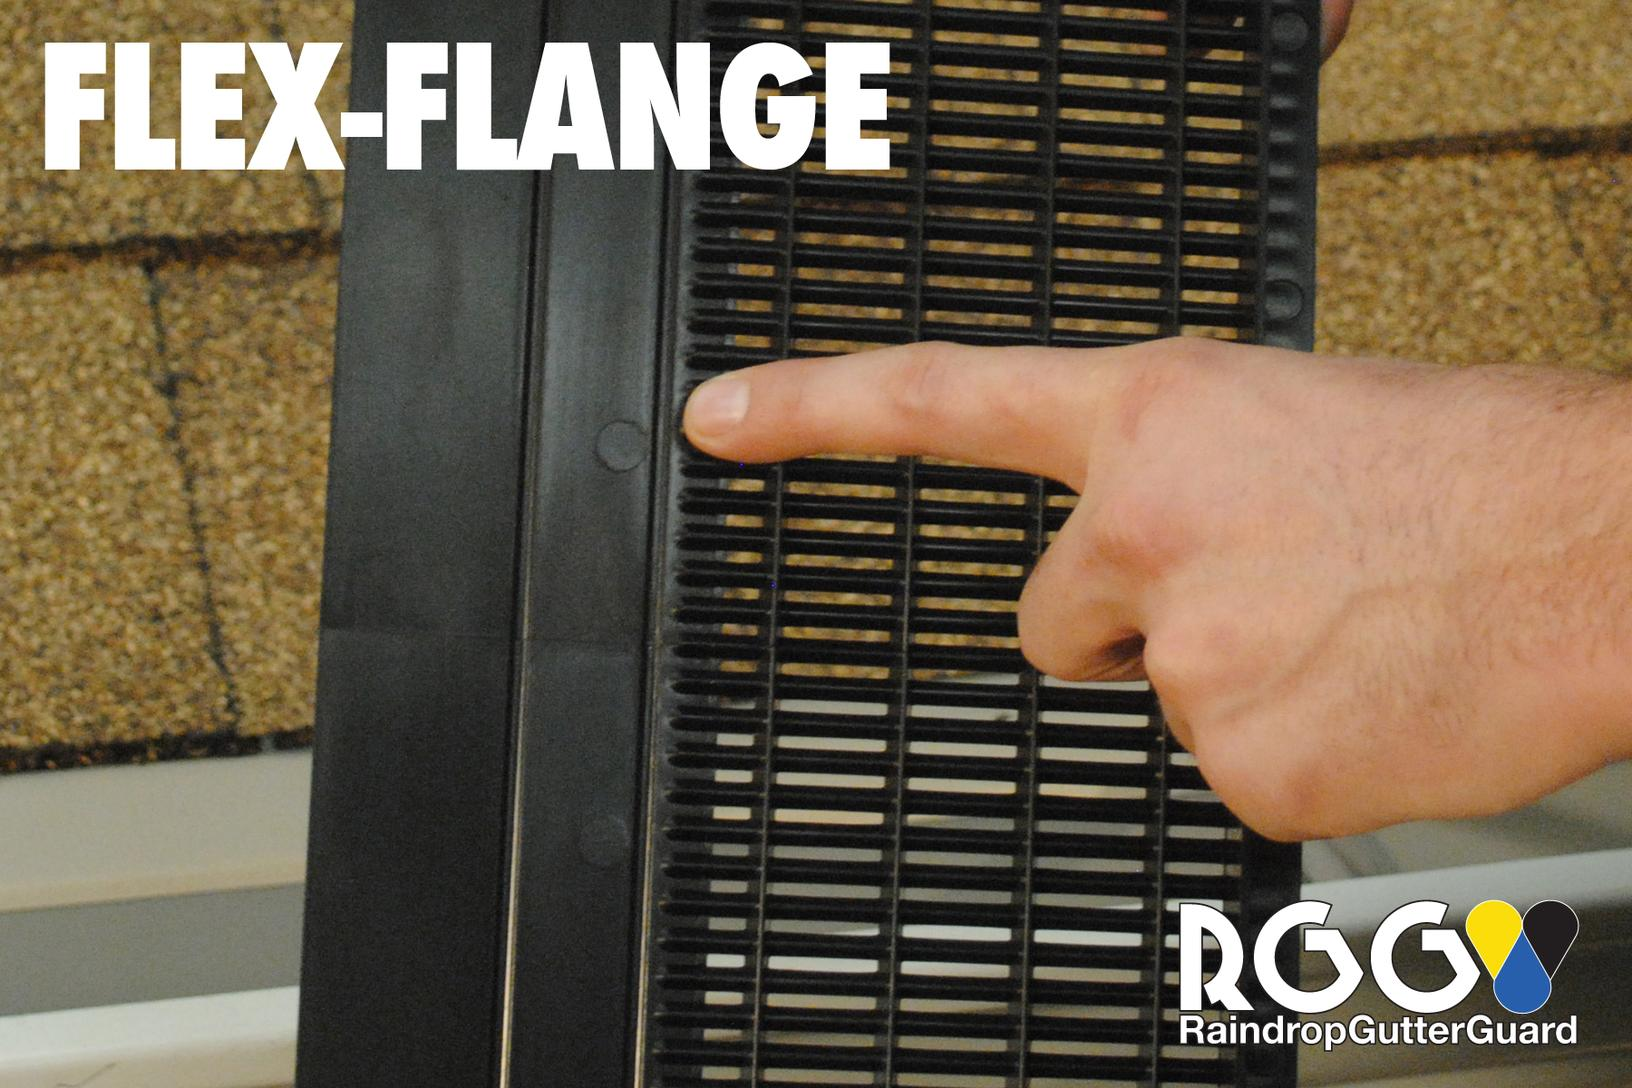 Flex-Flange To Fit Every Gutter Size, Roof Type & Installation Method